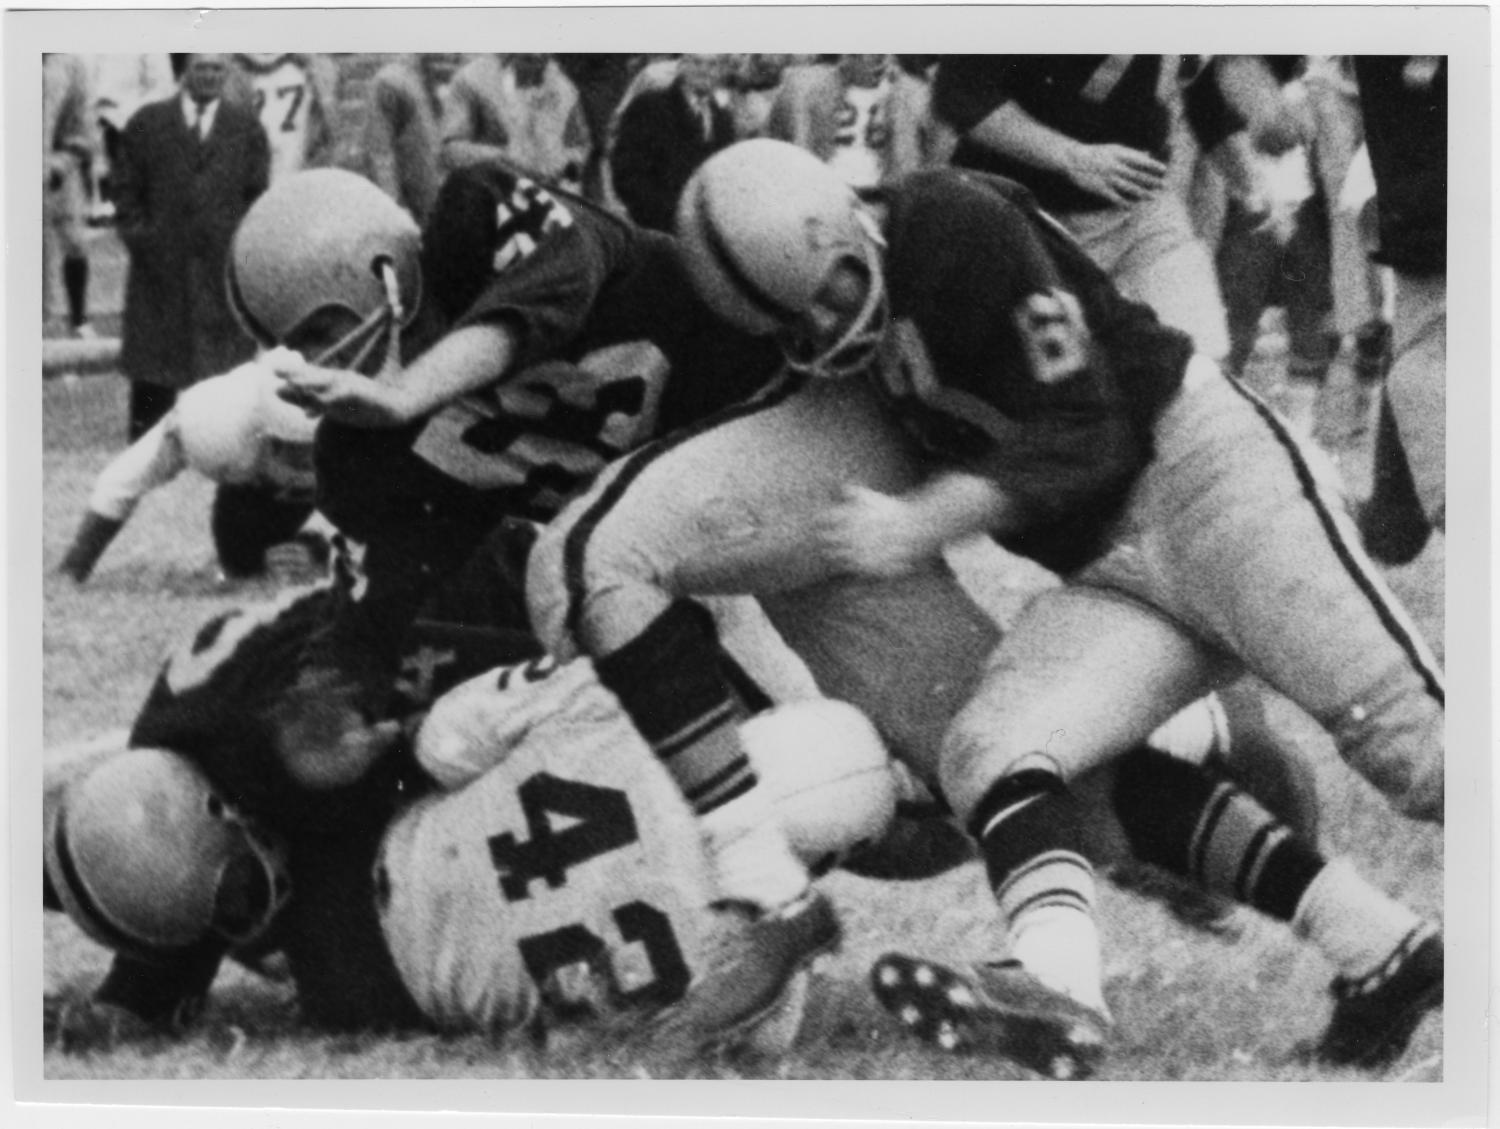 [North Texas Football Game against Wichita State University, early 1960s]                                                                                                      [Sequence #]: 1 of 2